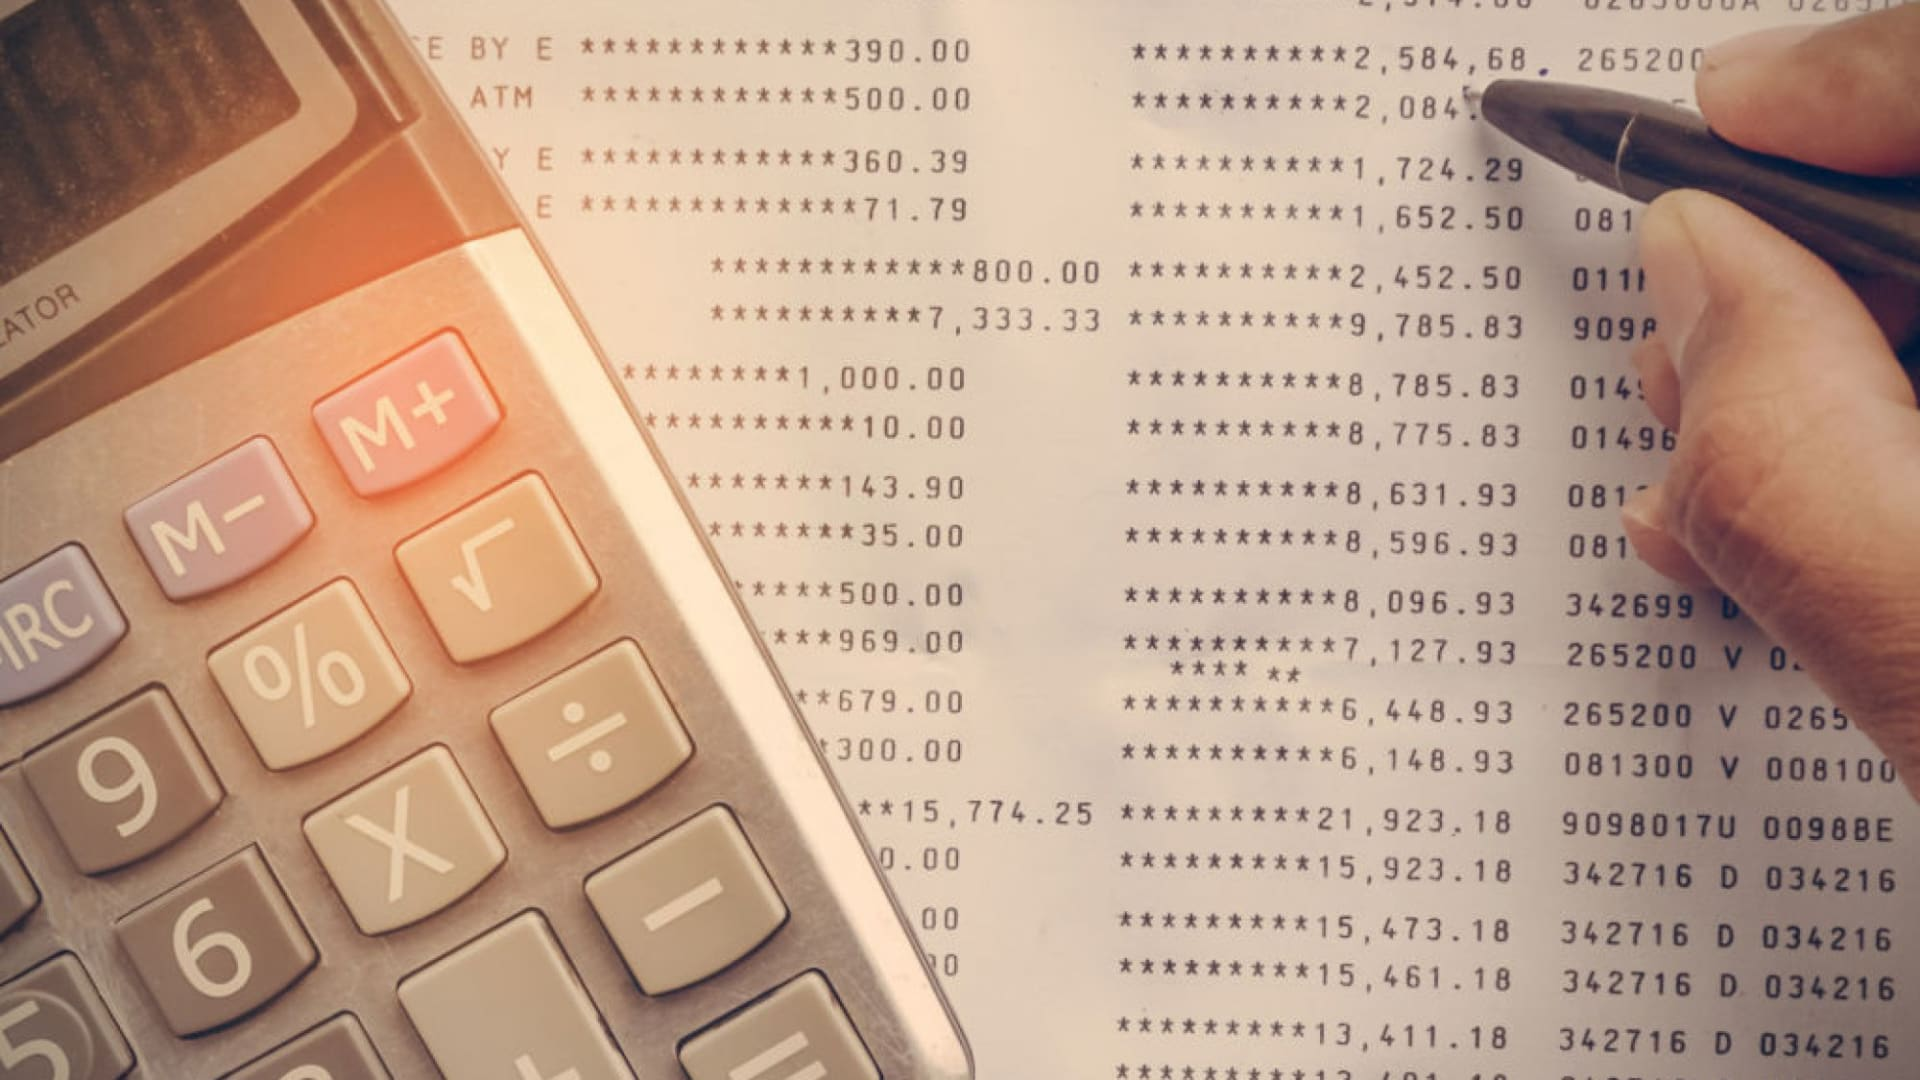 Accounts Receivable Financing: A Win-Win for Your Business